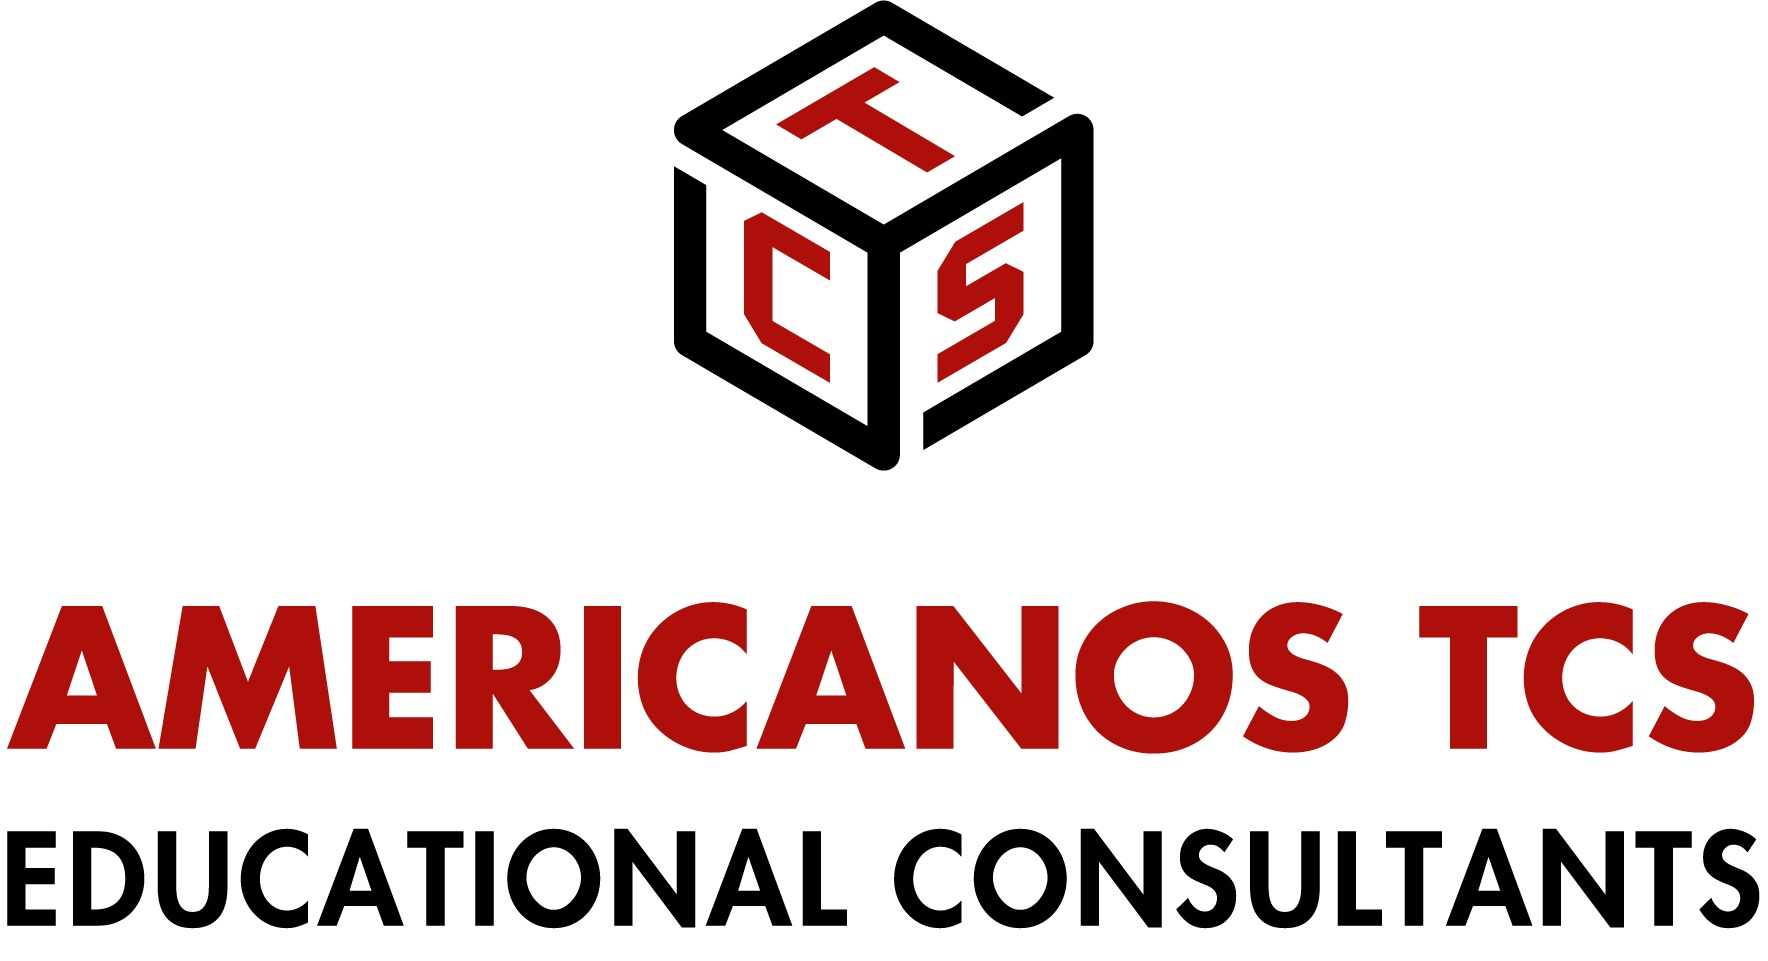 TCS Educational Consultants